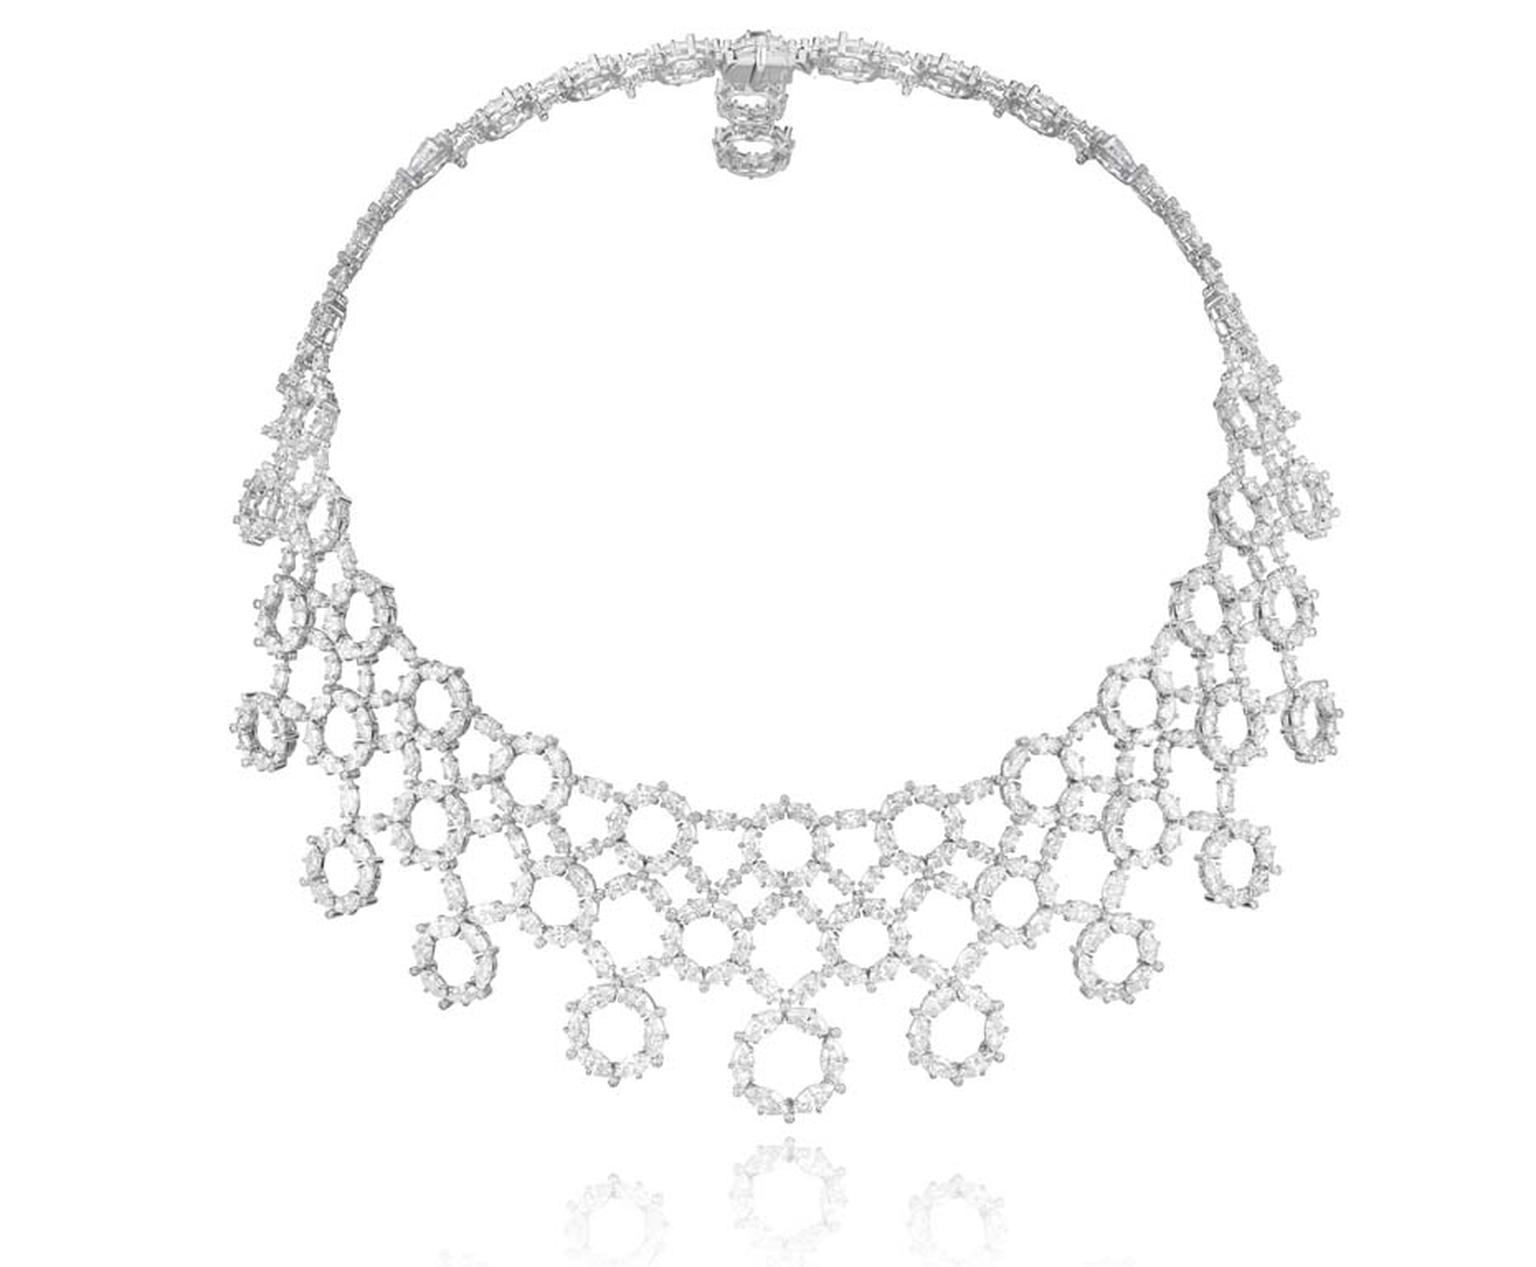 Chopard diamond collar necklace from the 2015 Red Carpet collection of high jewellery.